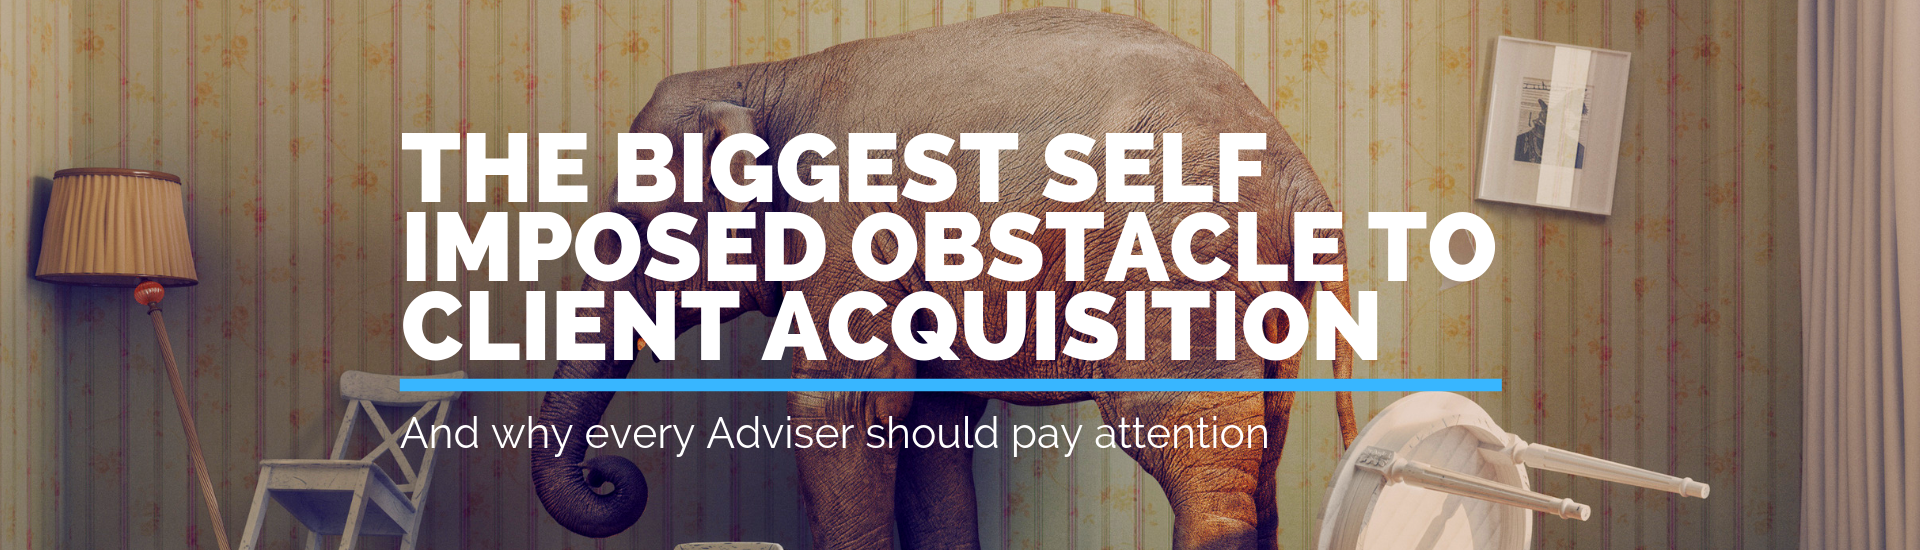 The Biggest Self Imposed Obstacle to Client Acquisition   Andrew Abel   Advisio